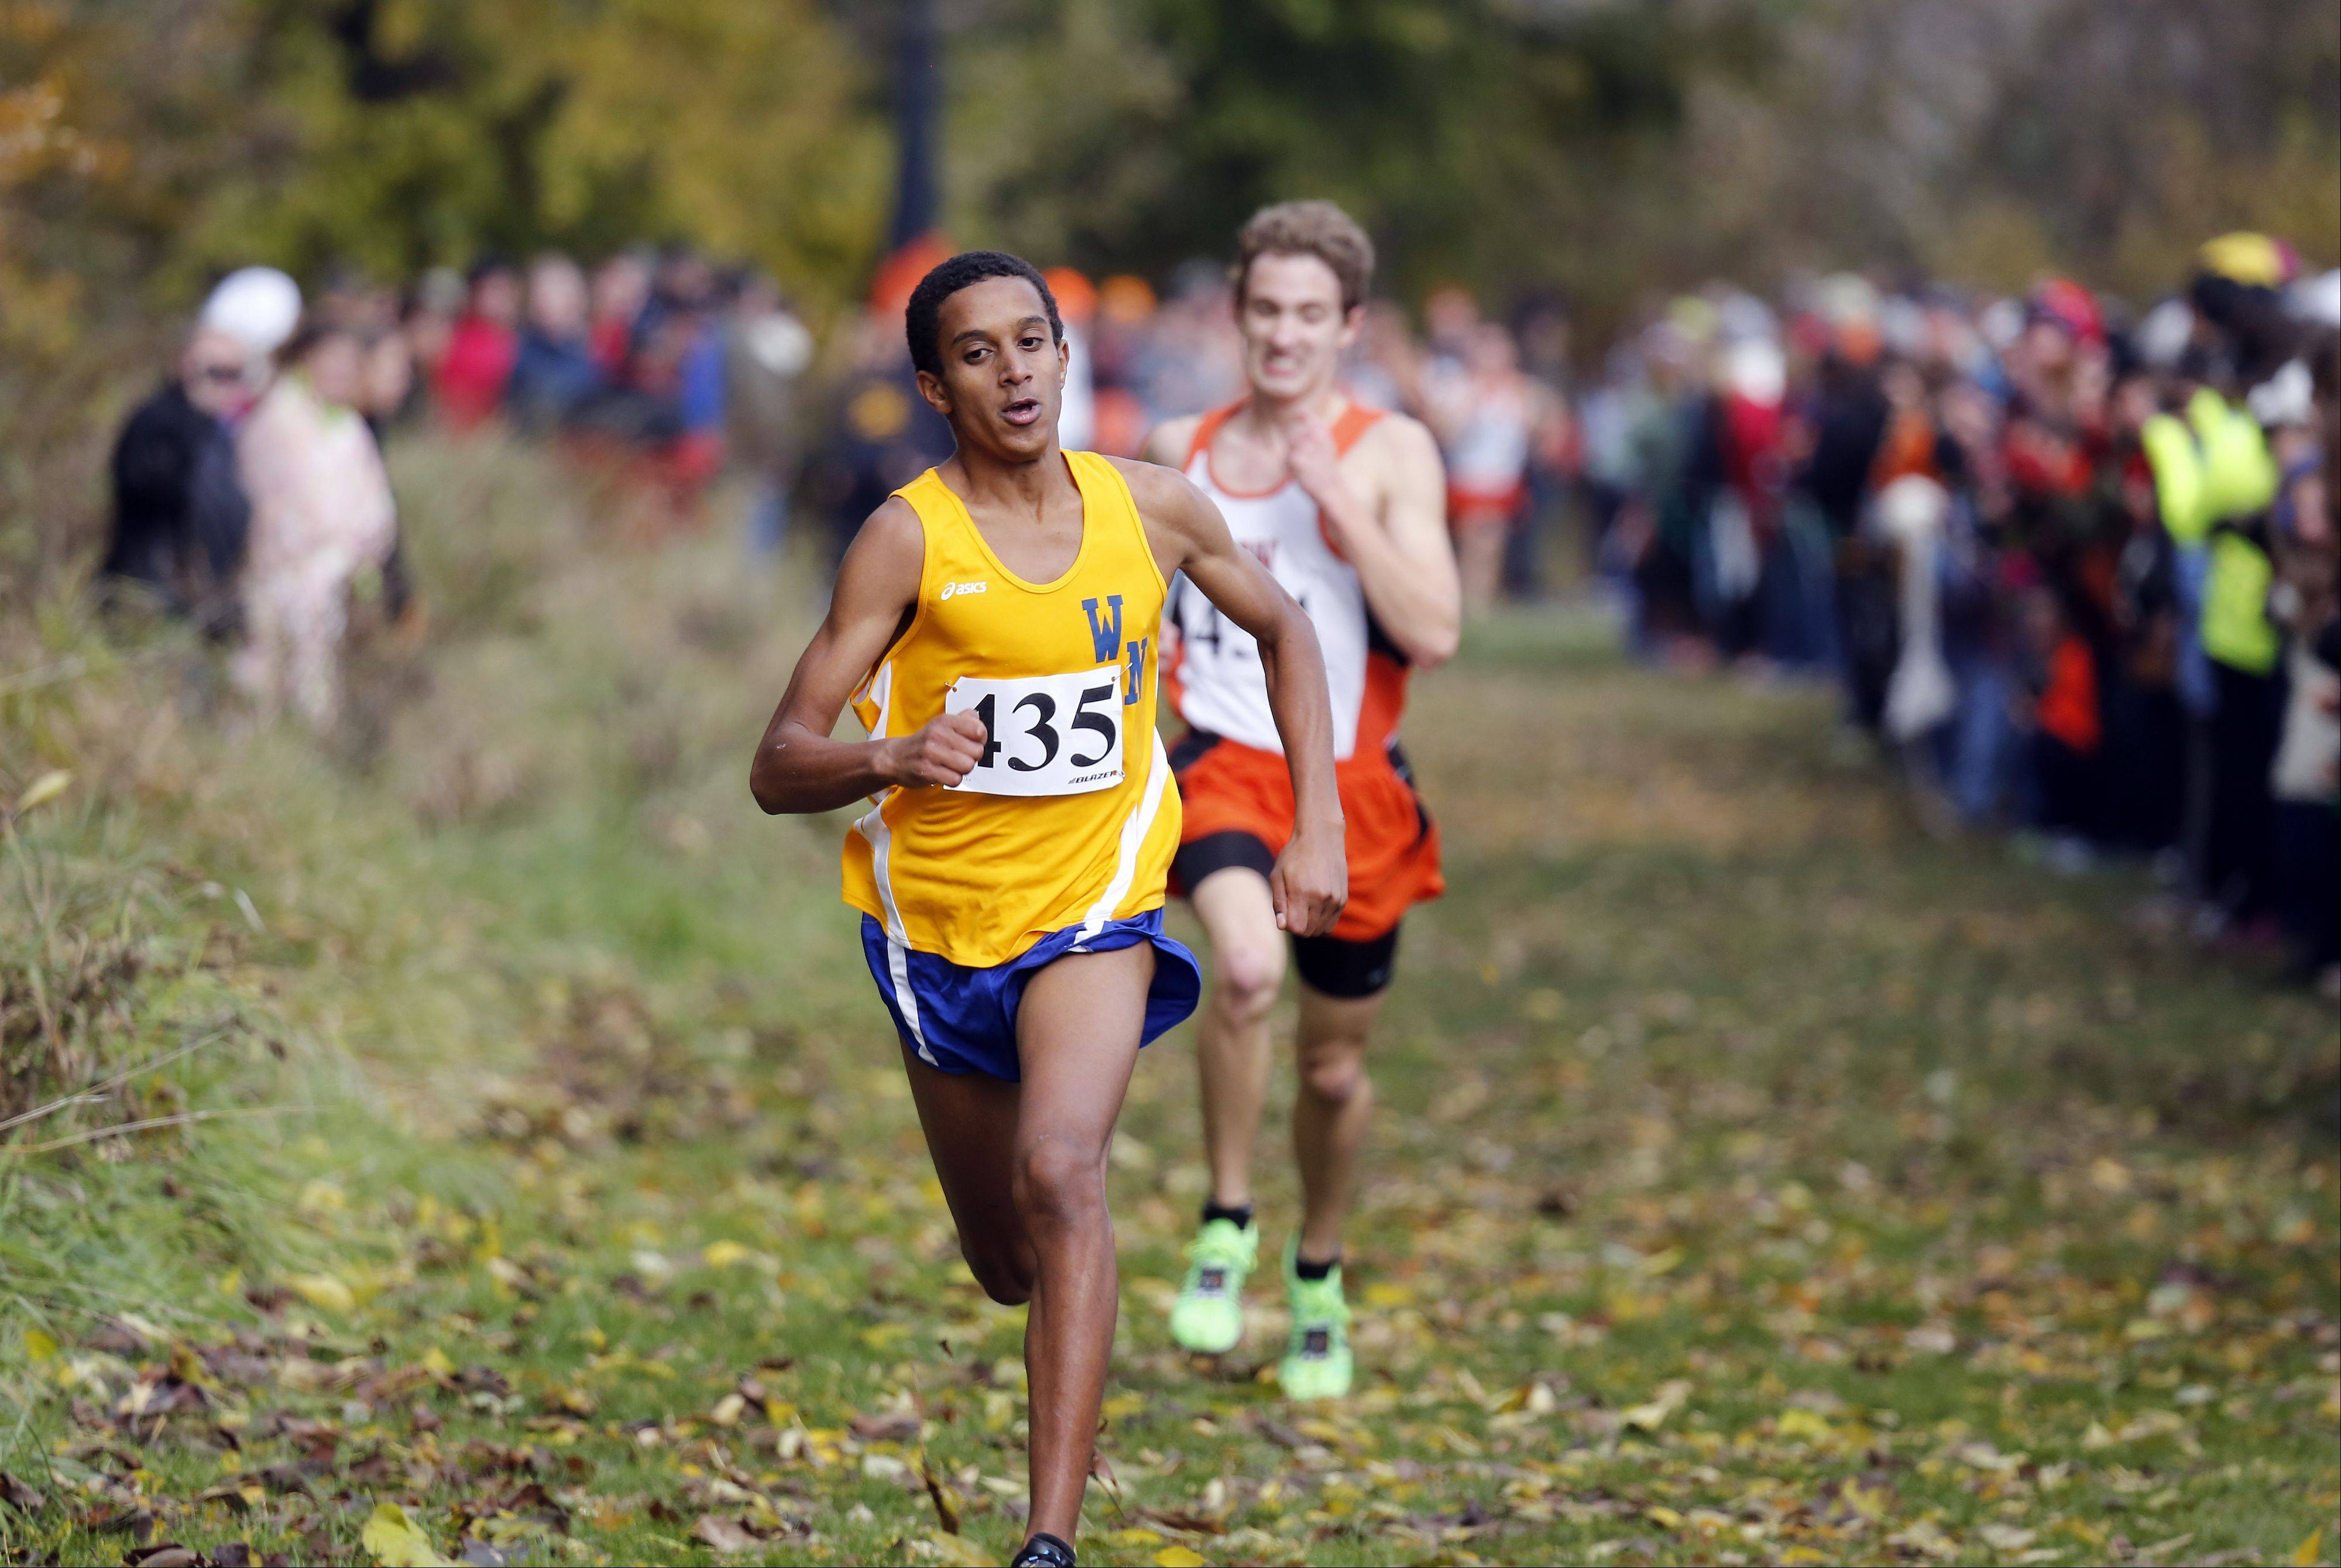 Wheaton North's Joseph Emmanuel on the way to first during the Waubonsie Valley boys cross country Sectional in Aurora.